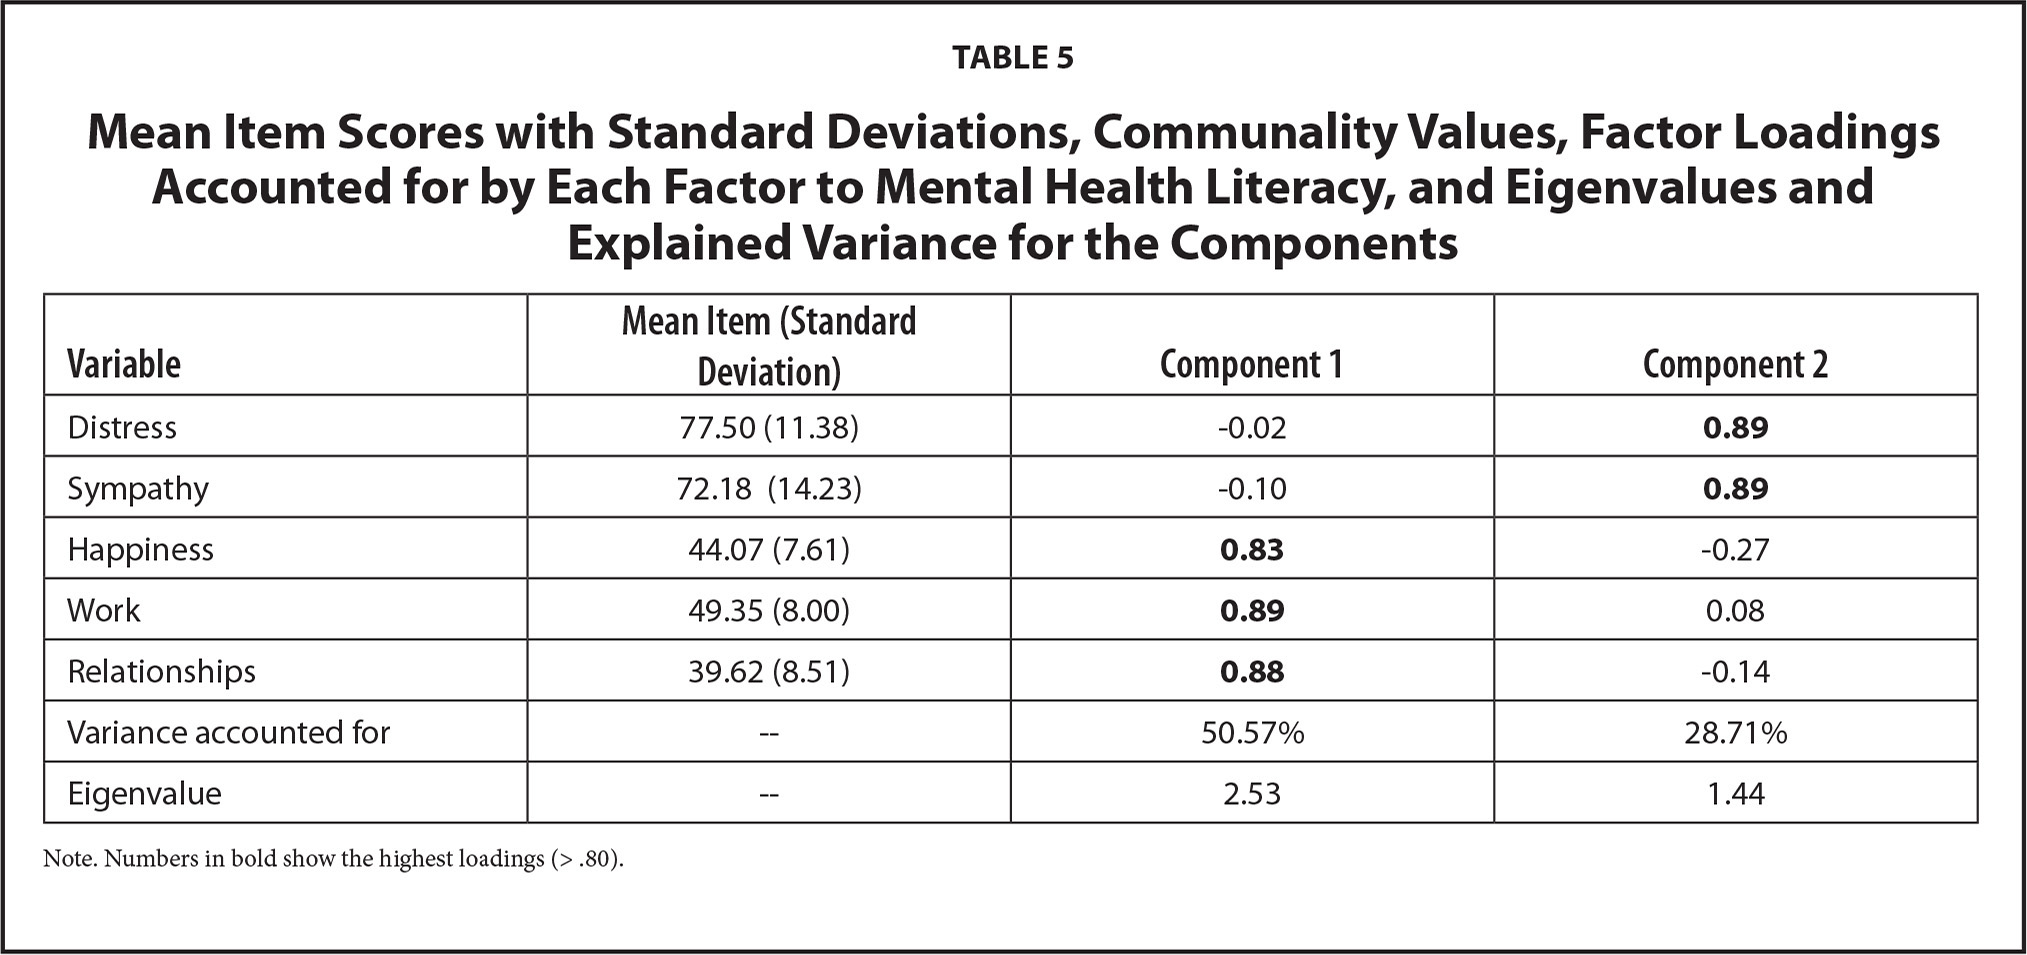 Mean Item Scores with Standard Deviations, Communality Values, Factor Loadings Accounted for by Each Factor to Mental Health Literacy, and Eigenvalues and Explained Variance for the Components